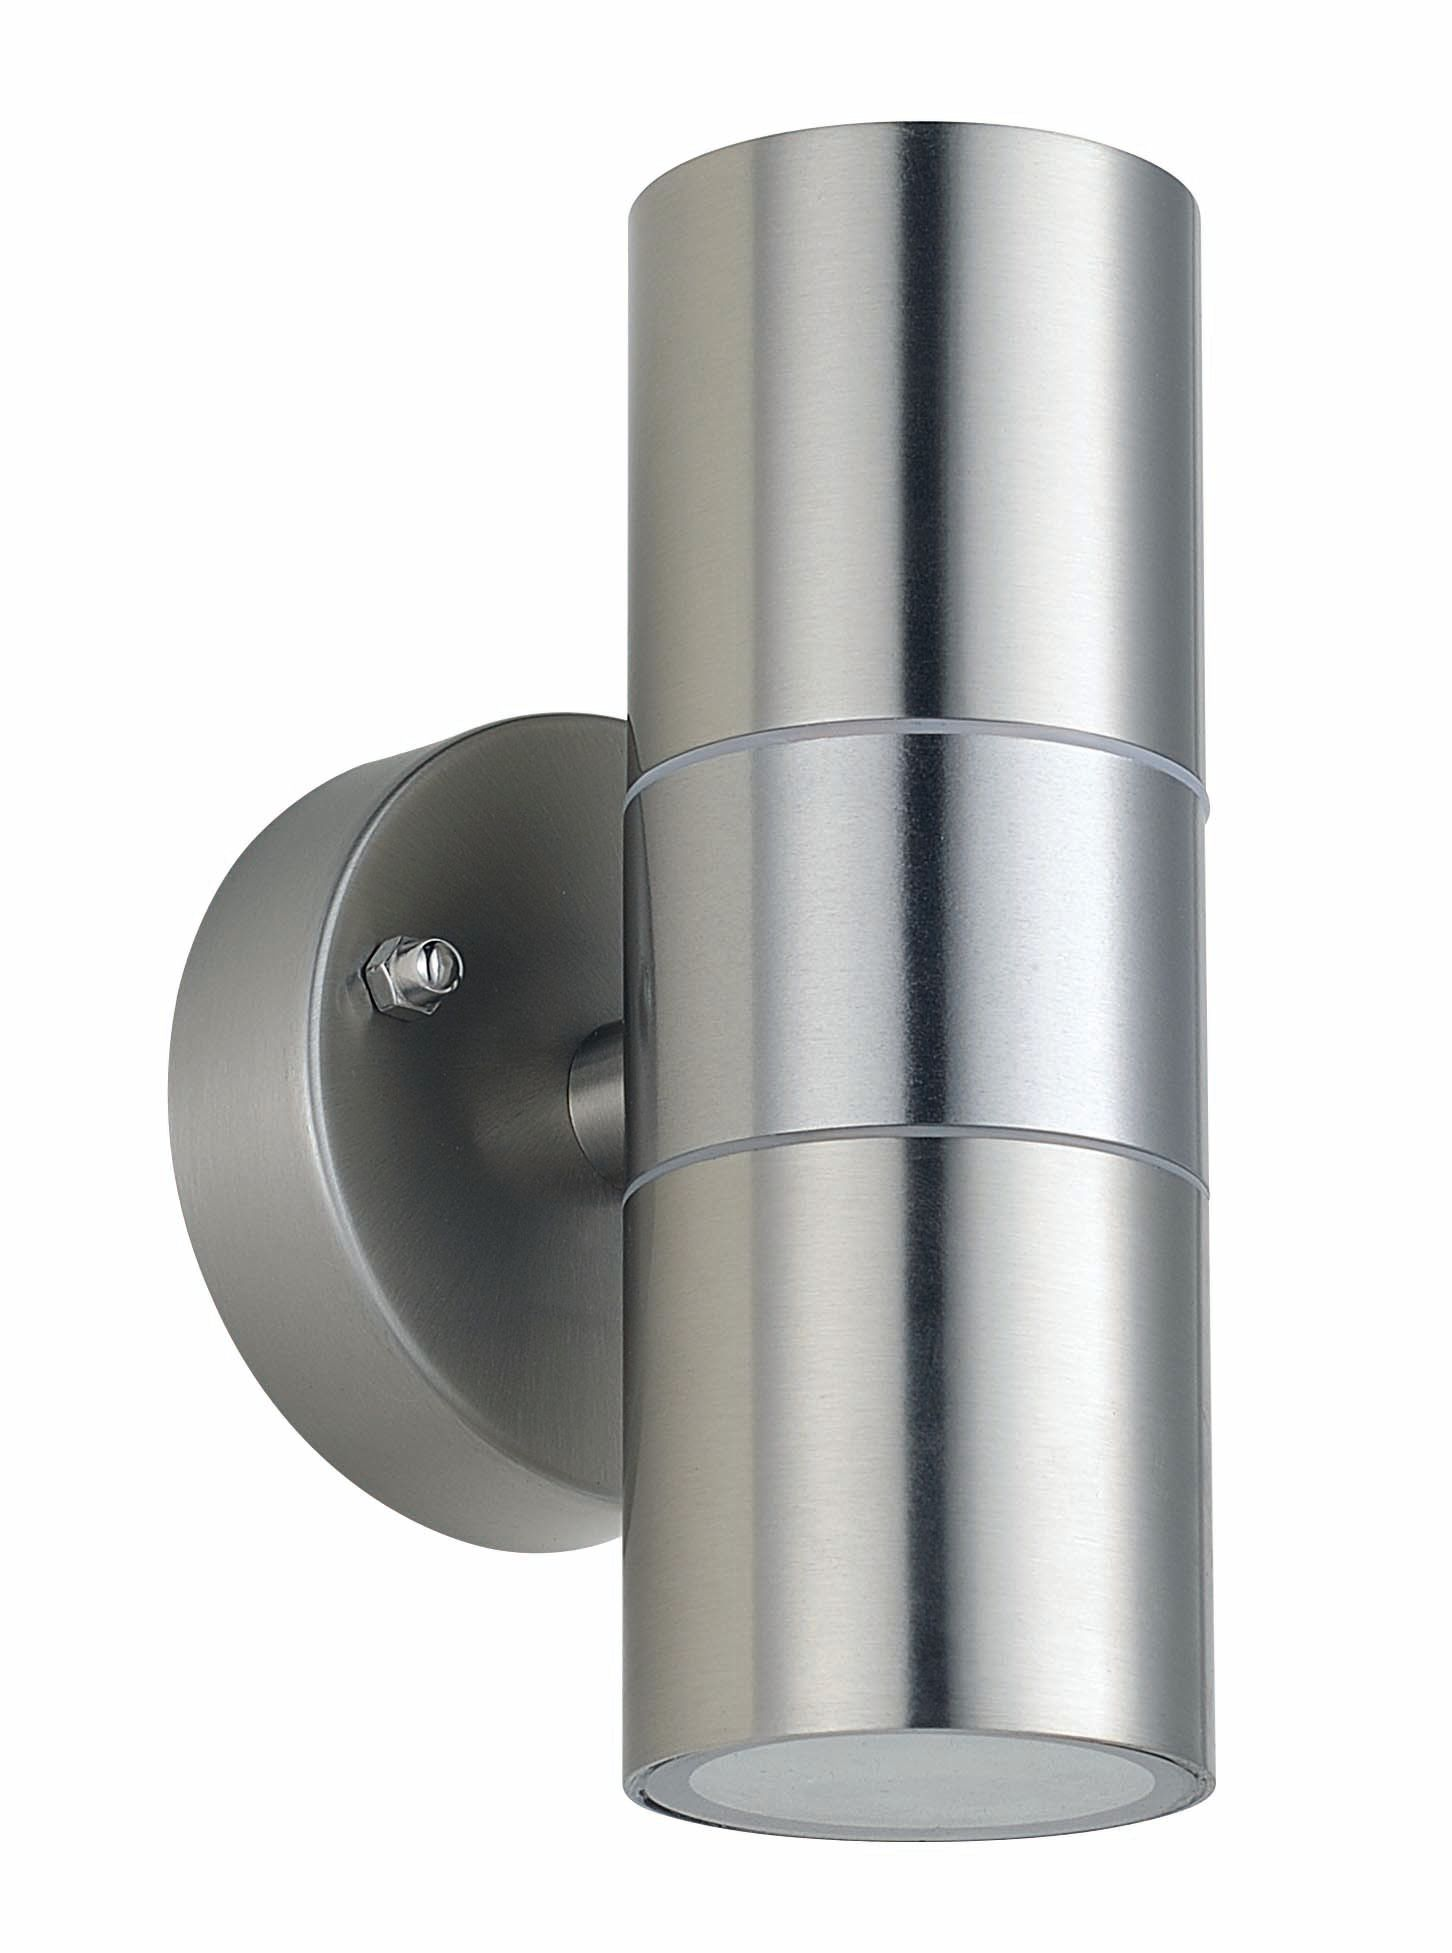 Philips myGarden Parrot Outdoor Wall Stainless Steel Lantern With Motion Sensor